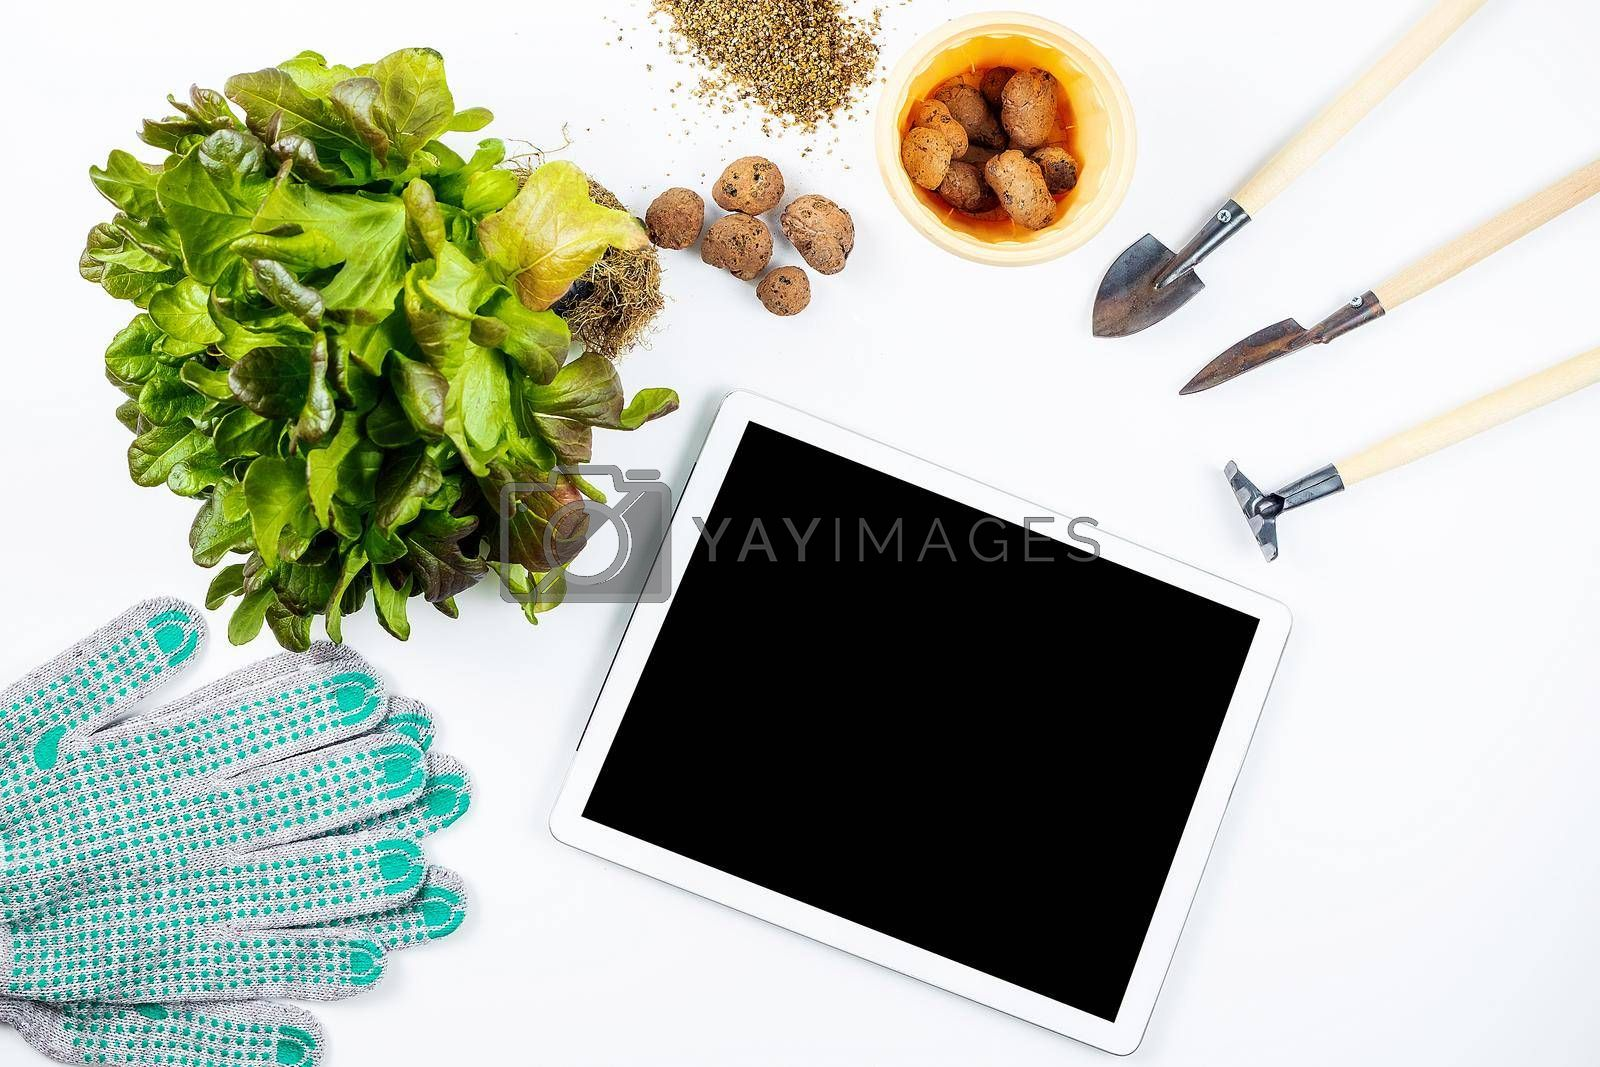 Home gardening concept, online training. On a white table are small tools for home gardening: shovels and rakes, garden gloves, expanded clay, a plant for transplanting, a tablet and flower pot.